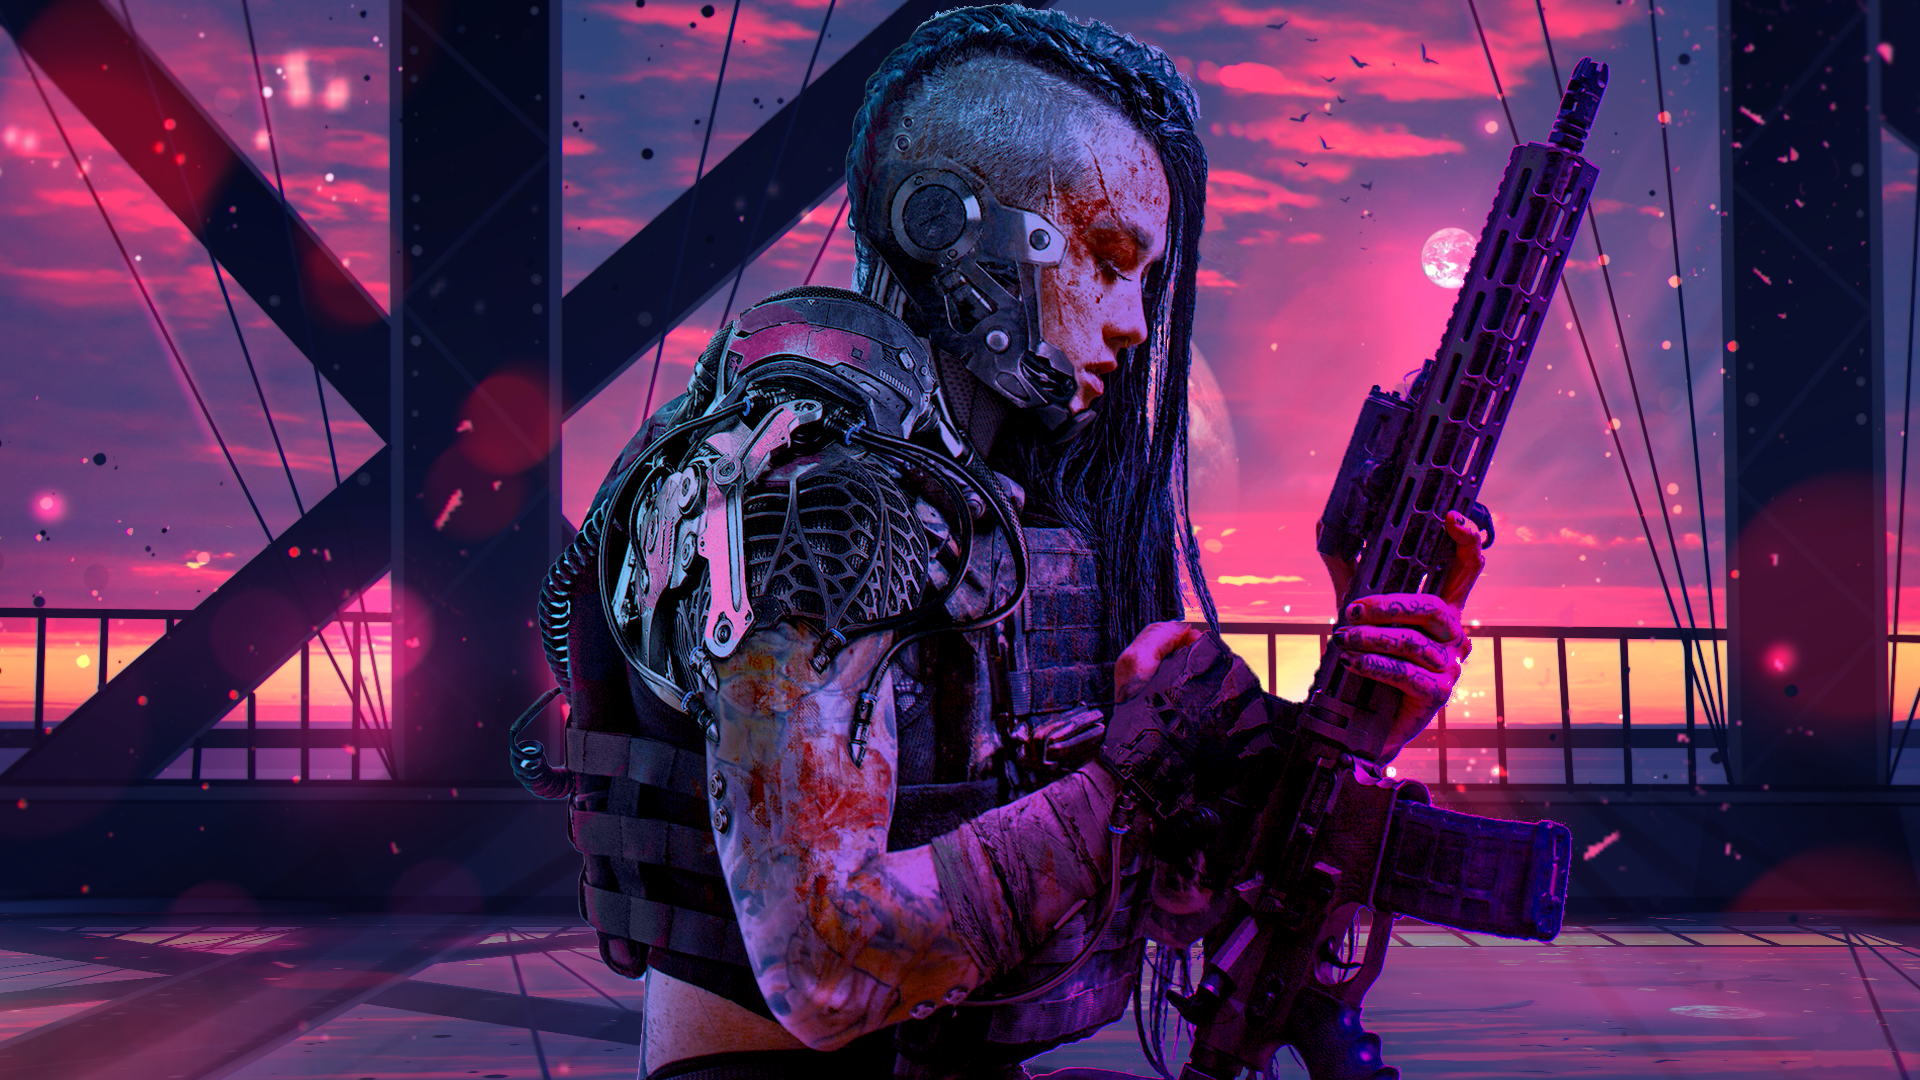 1920x1080 synthwave wallpaper